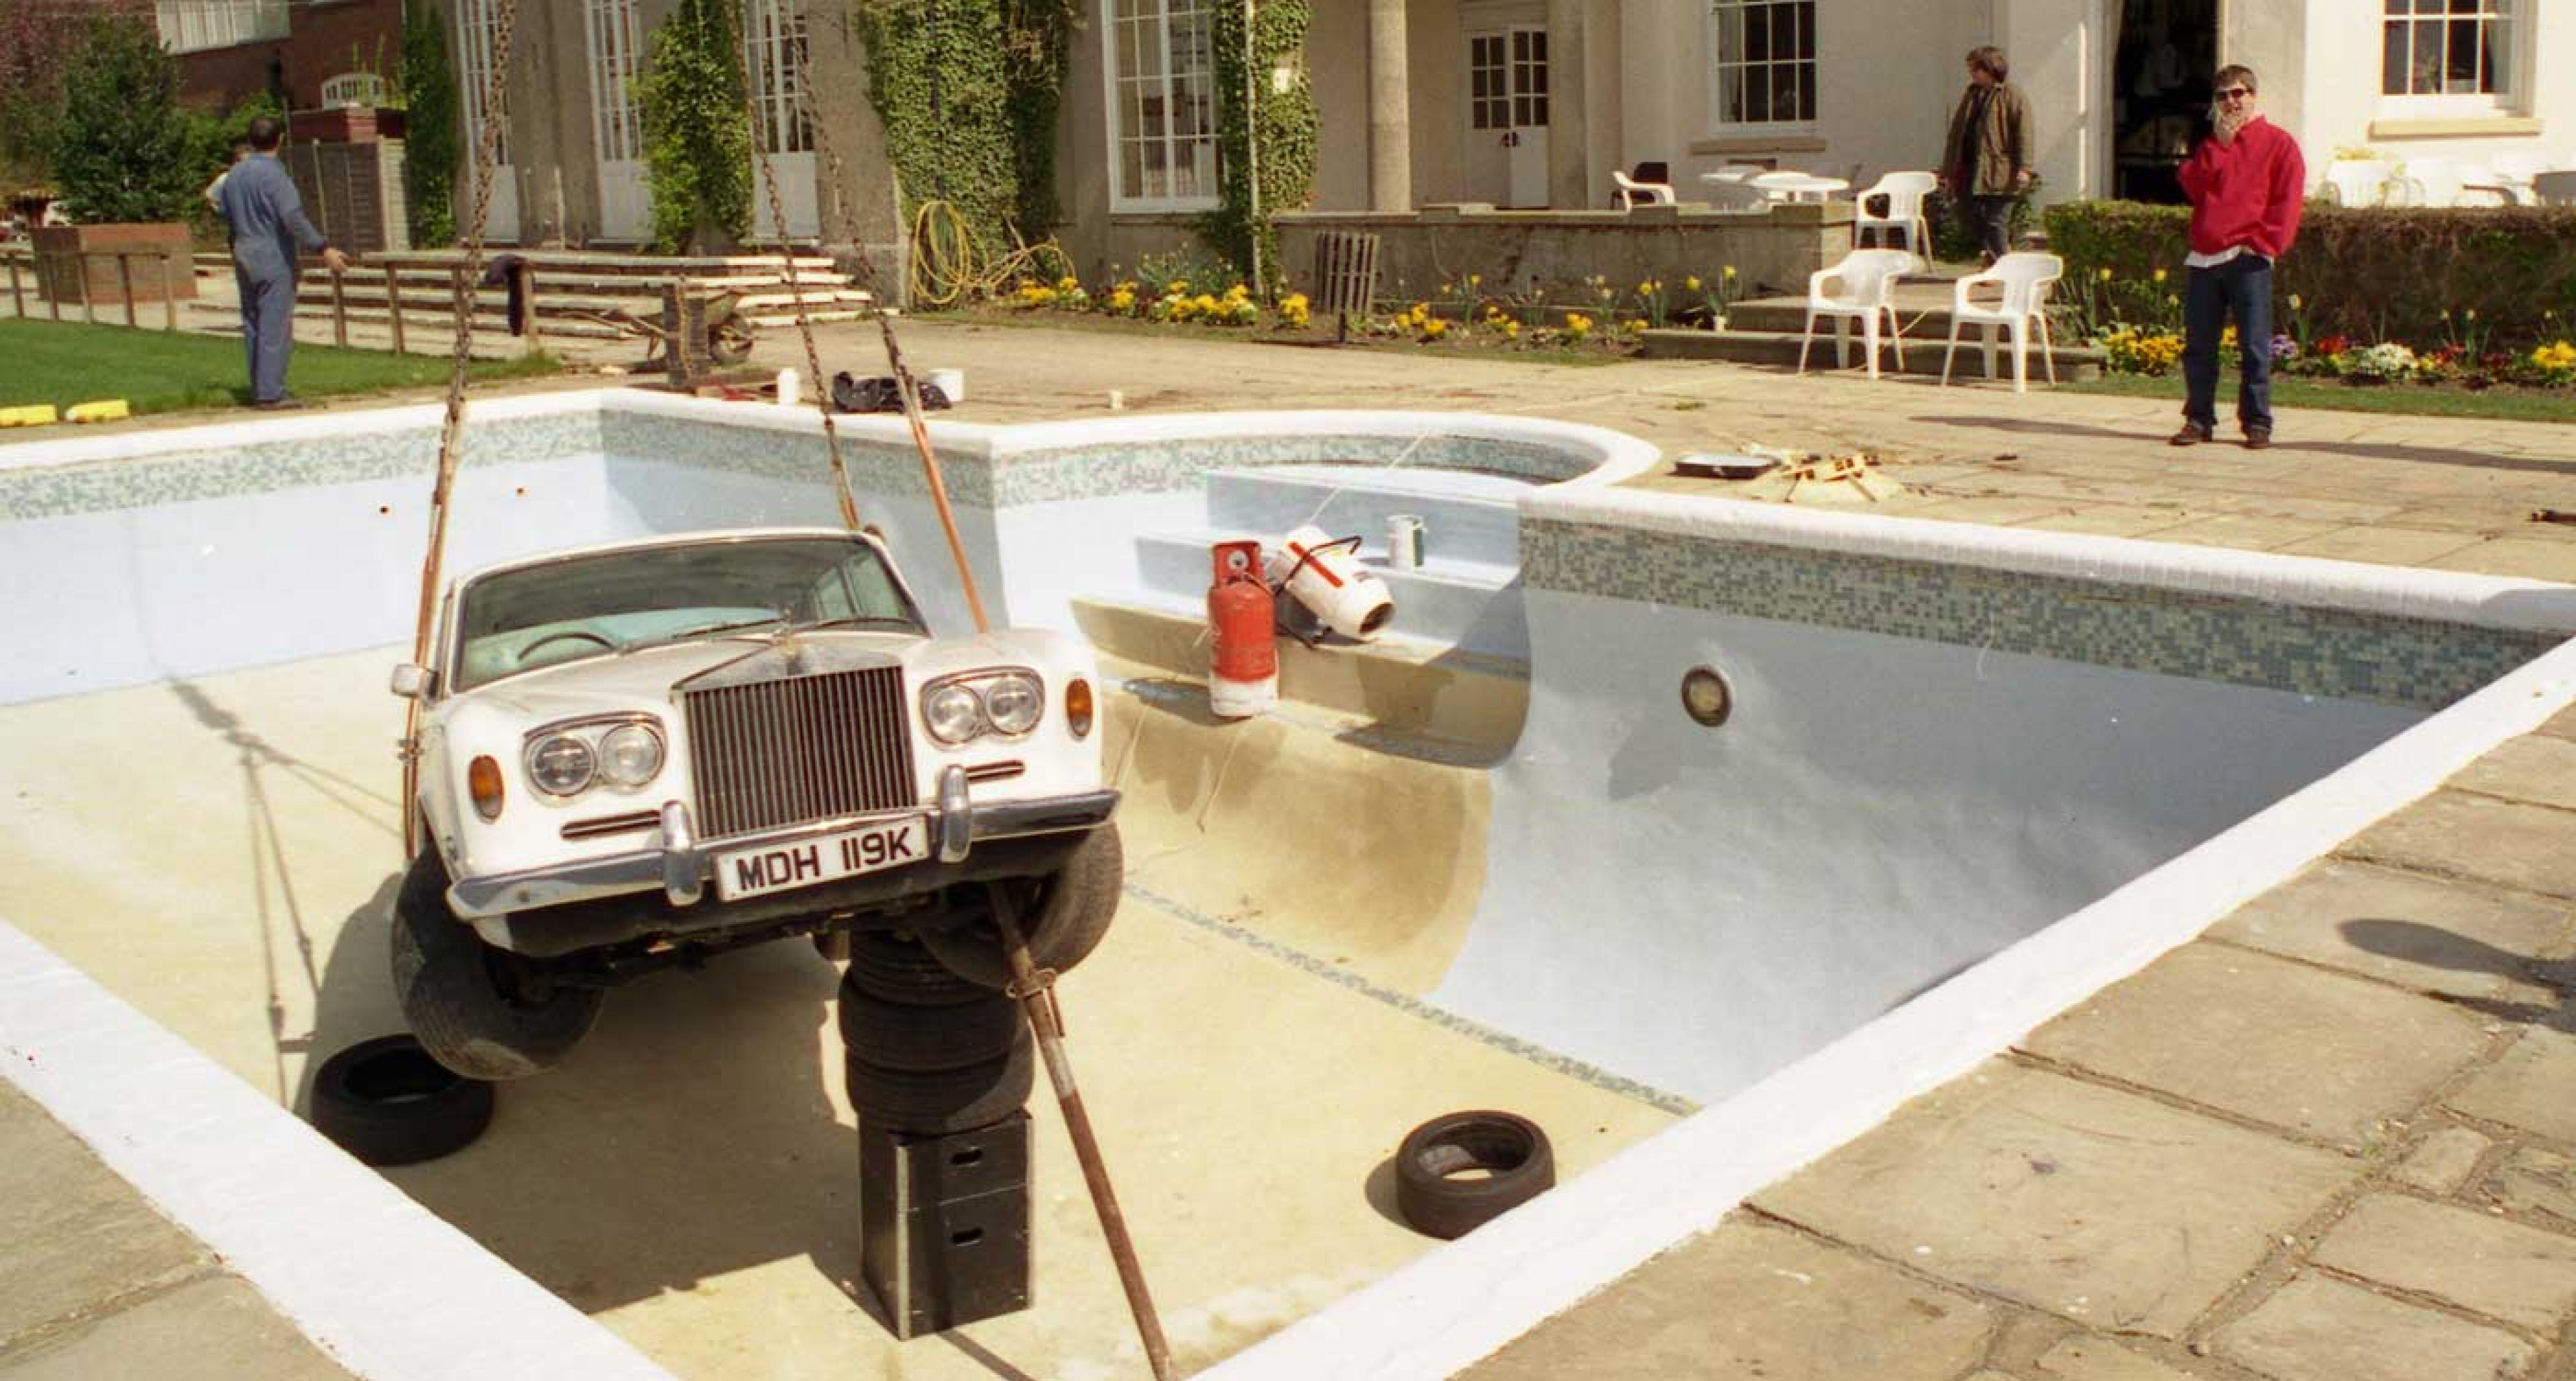 Frivolous fantasy how oasis sank a rolls royce classic - Keith moon rolls royce swimming pool ...